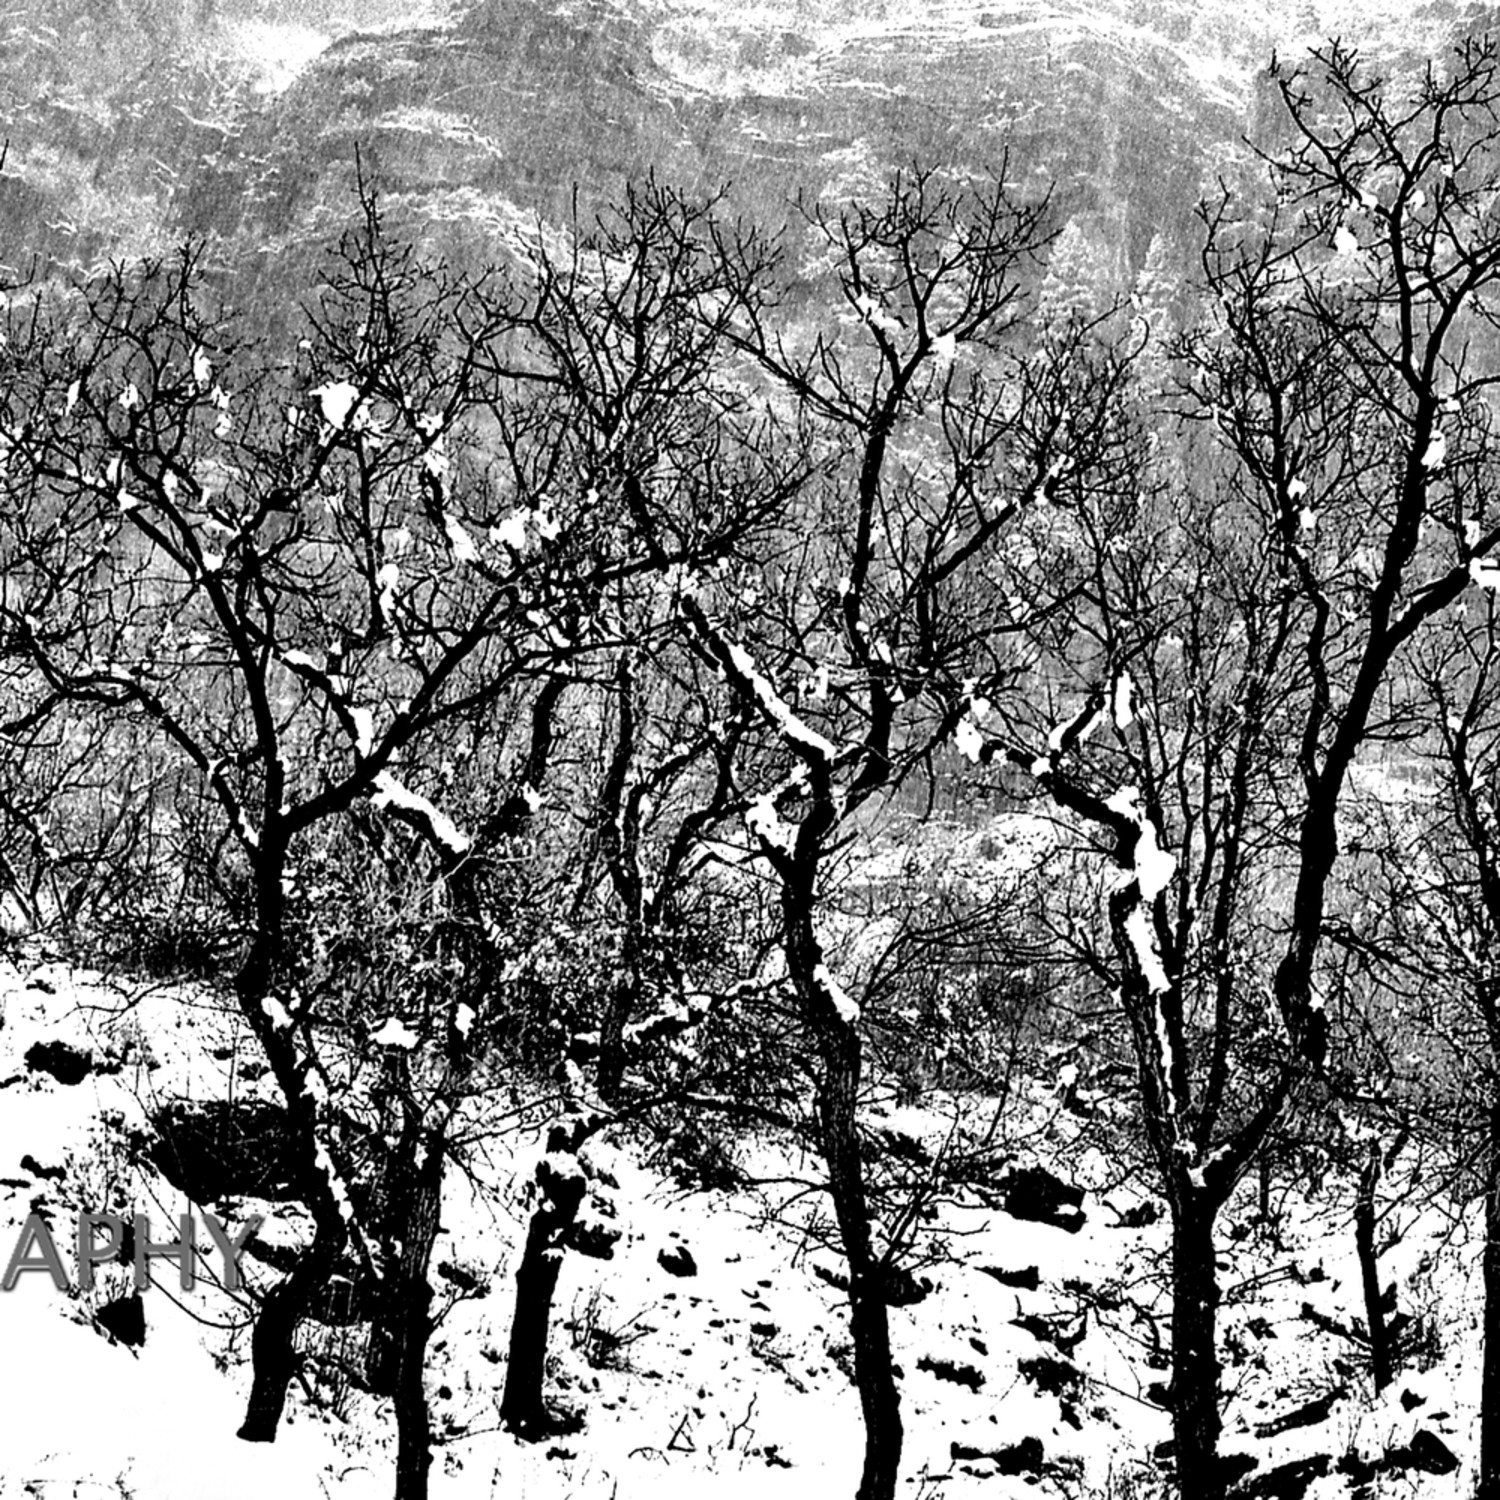 Trees in snow2006 wyant2 vgz8jn